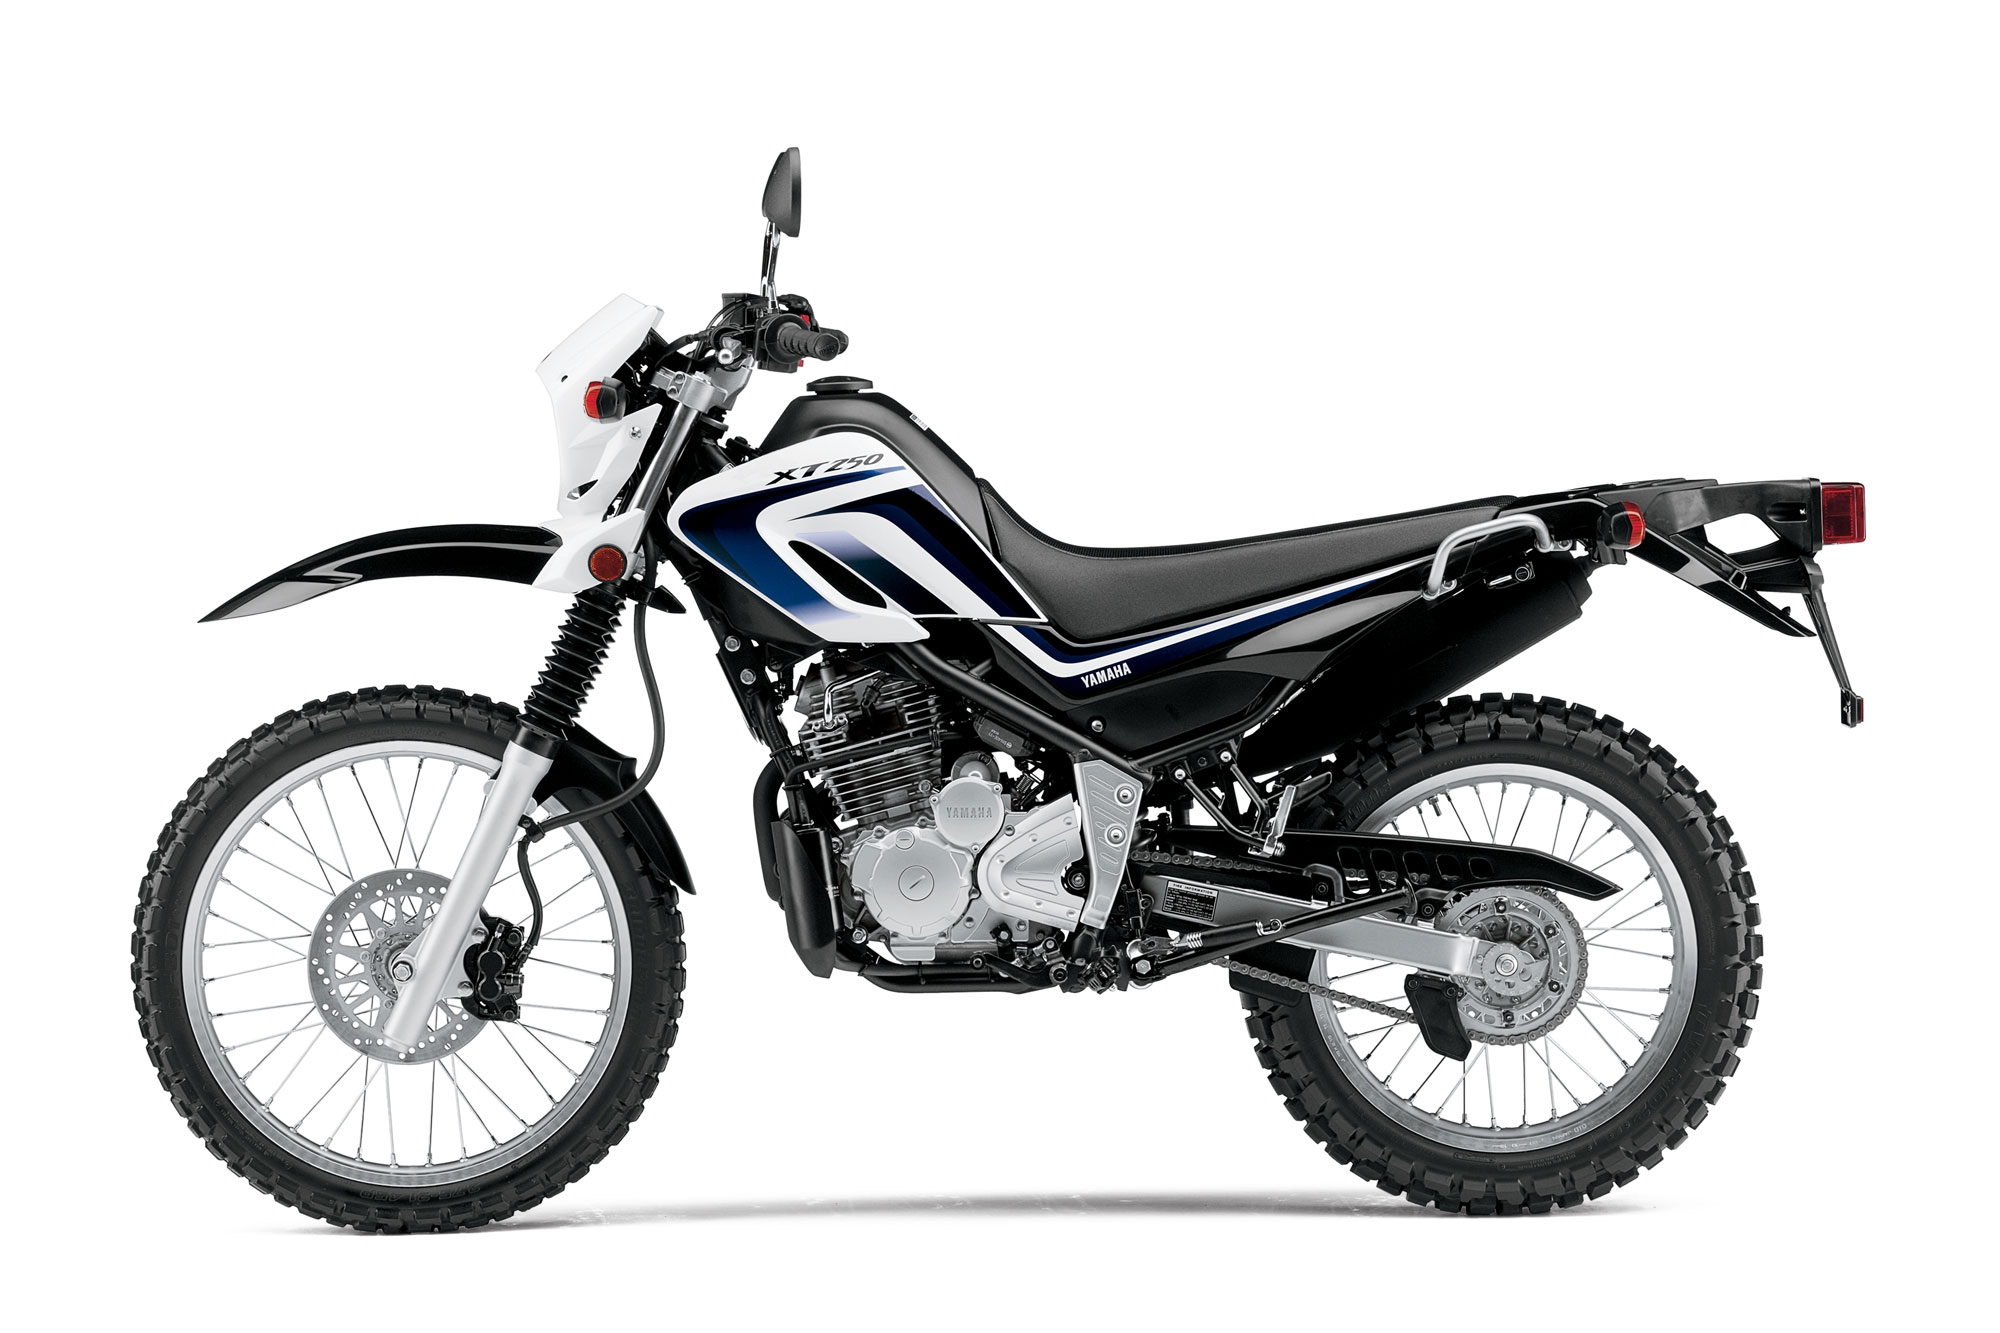 2063 also New Up ing Bikes In India 2013 in addition Daewoo 2 0 Photo 17 also Harley Motorcycle Clipart moreover Search. on cruiser motorcycles